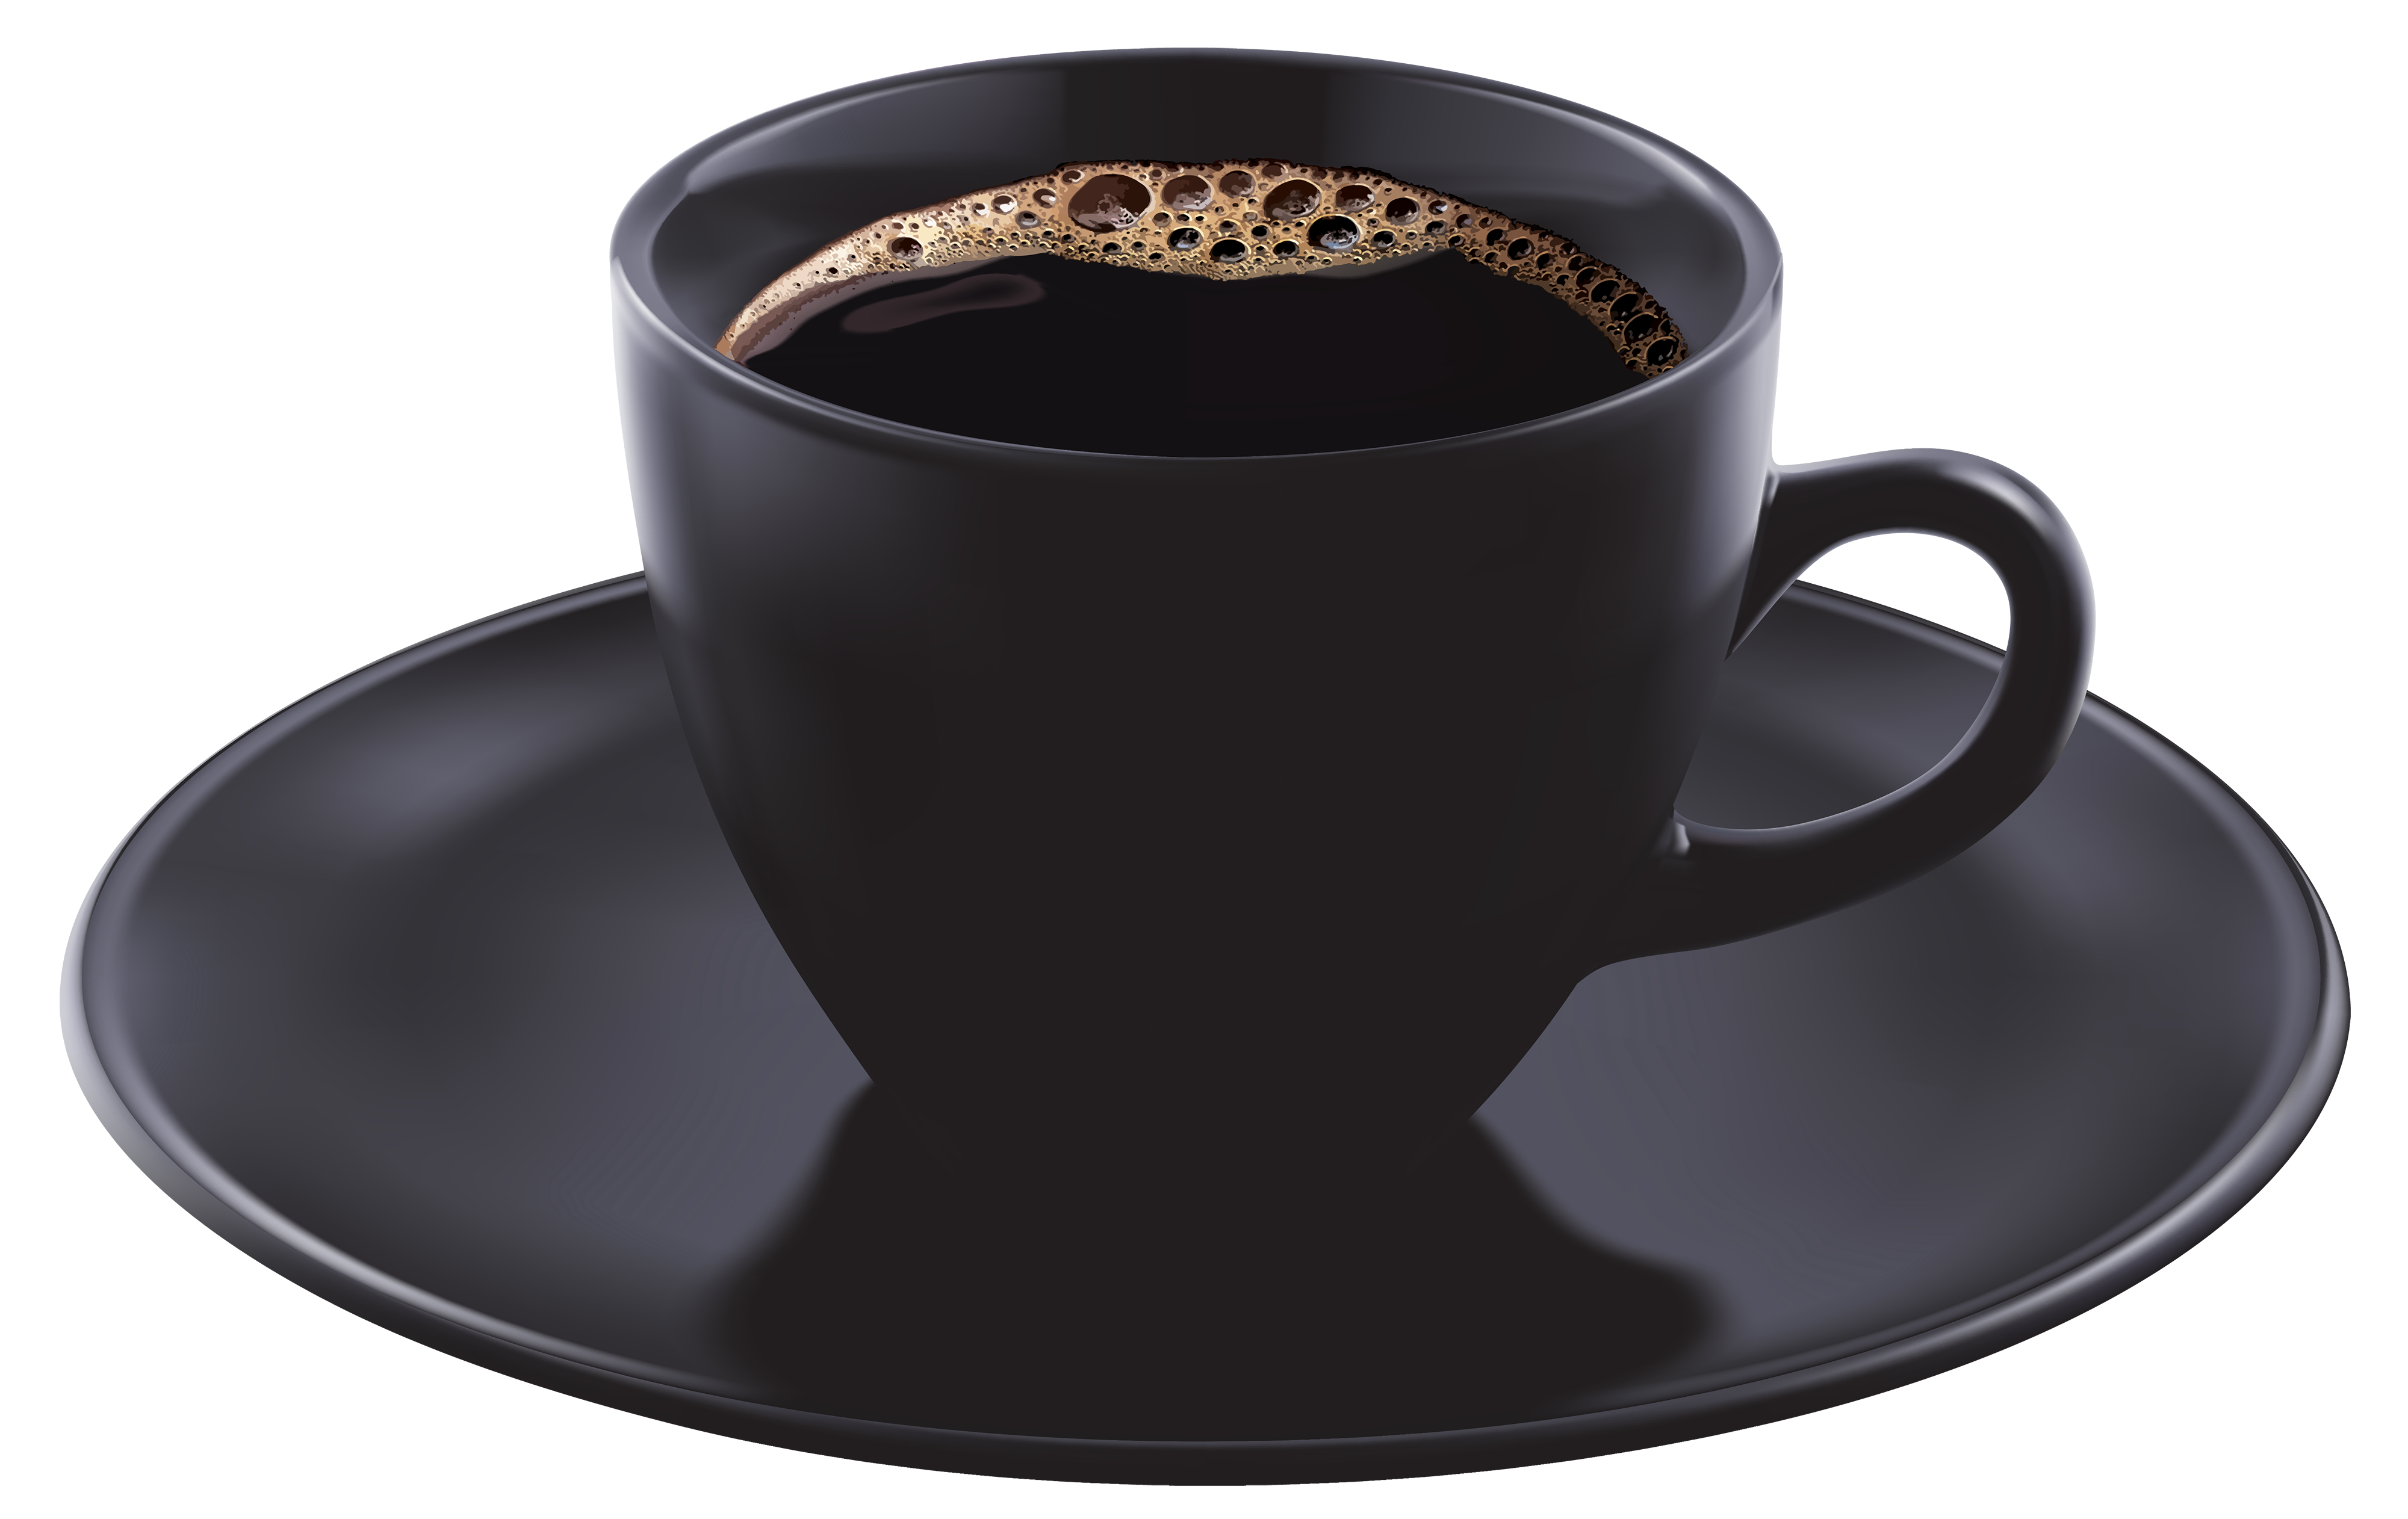 Black Coffee Cup Png Clipart Image Black Coffee Coffee Png Coffee